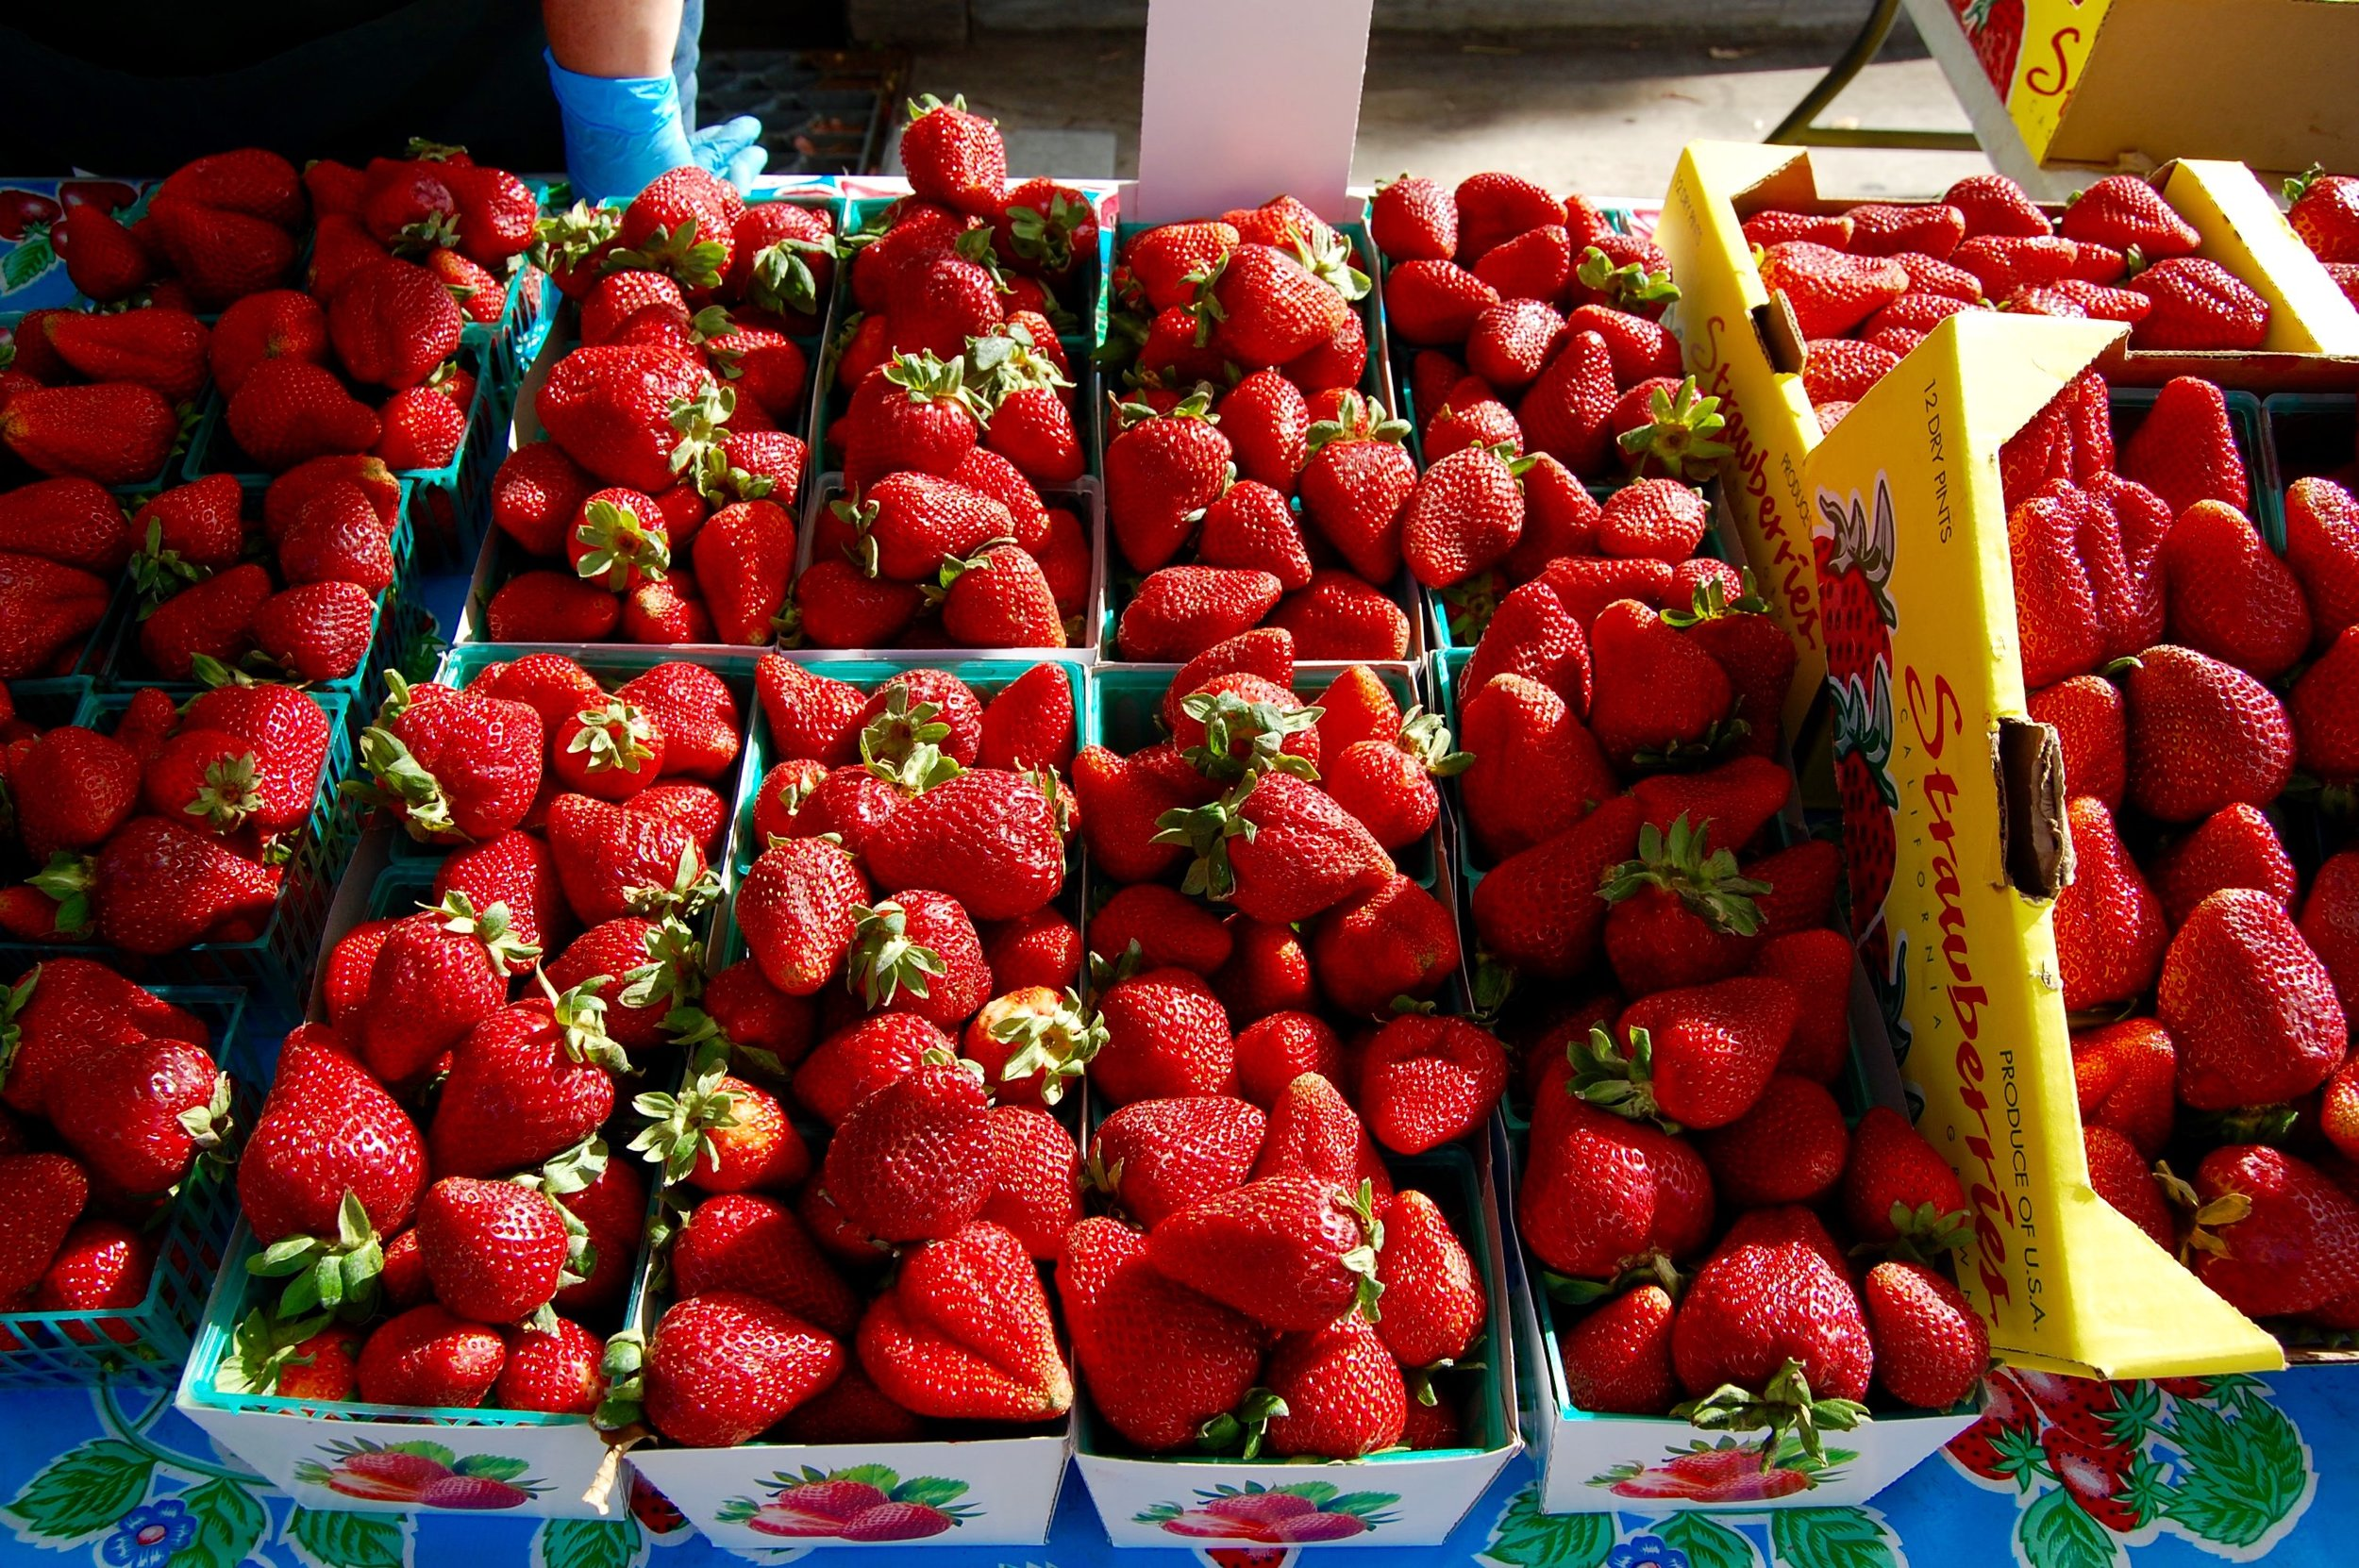 The Best Strawberries Ever, at the Saratoga Village Farmer's Market on Wednesday afternoons.